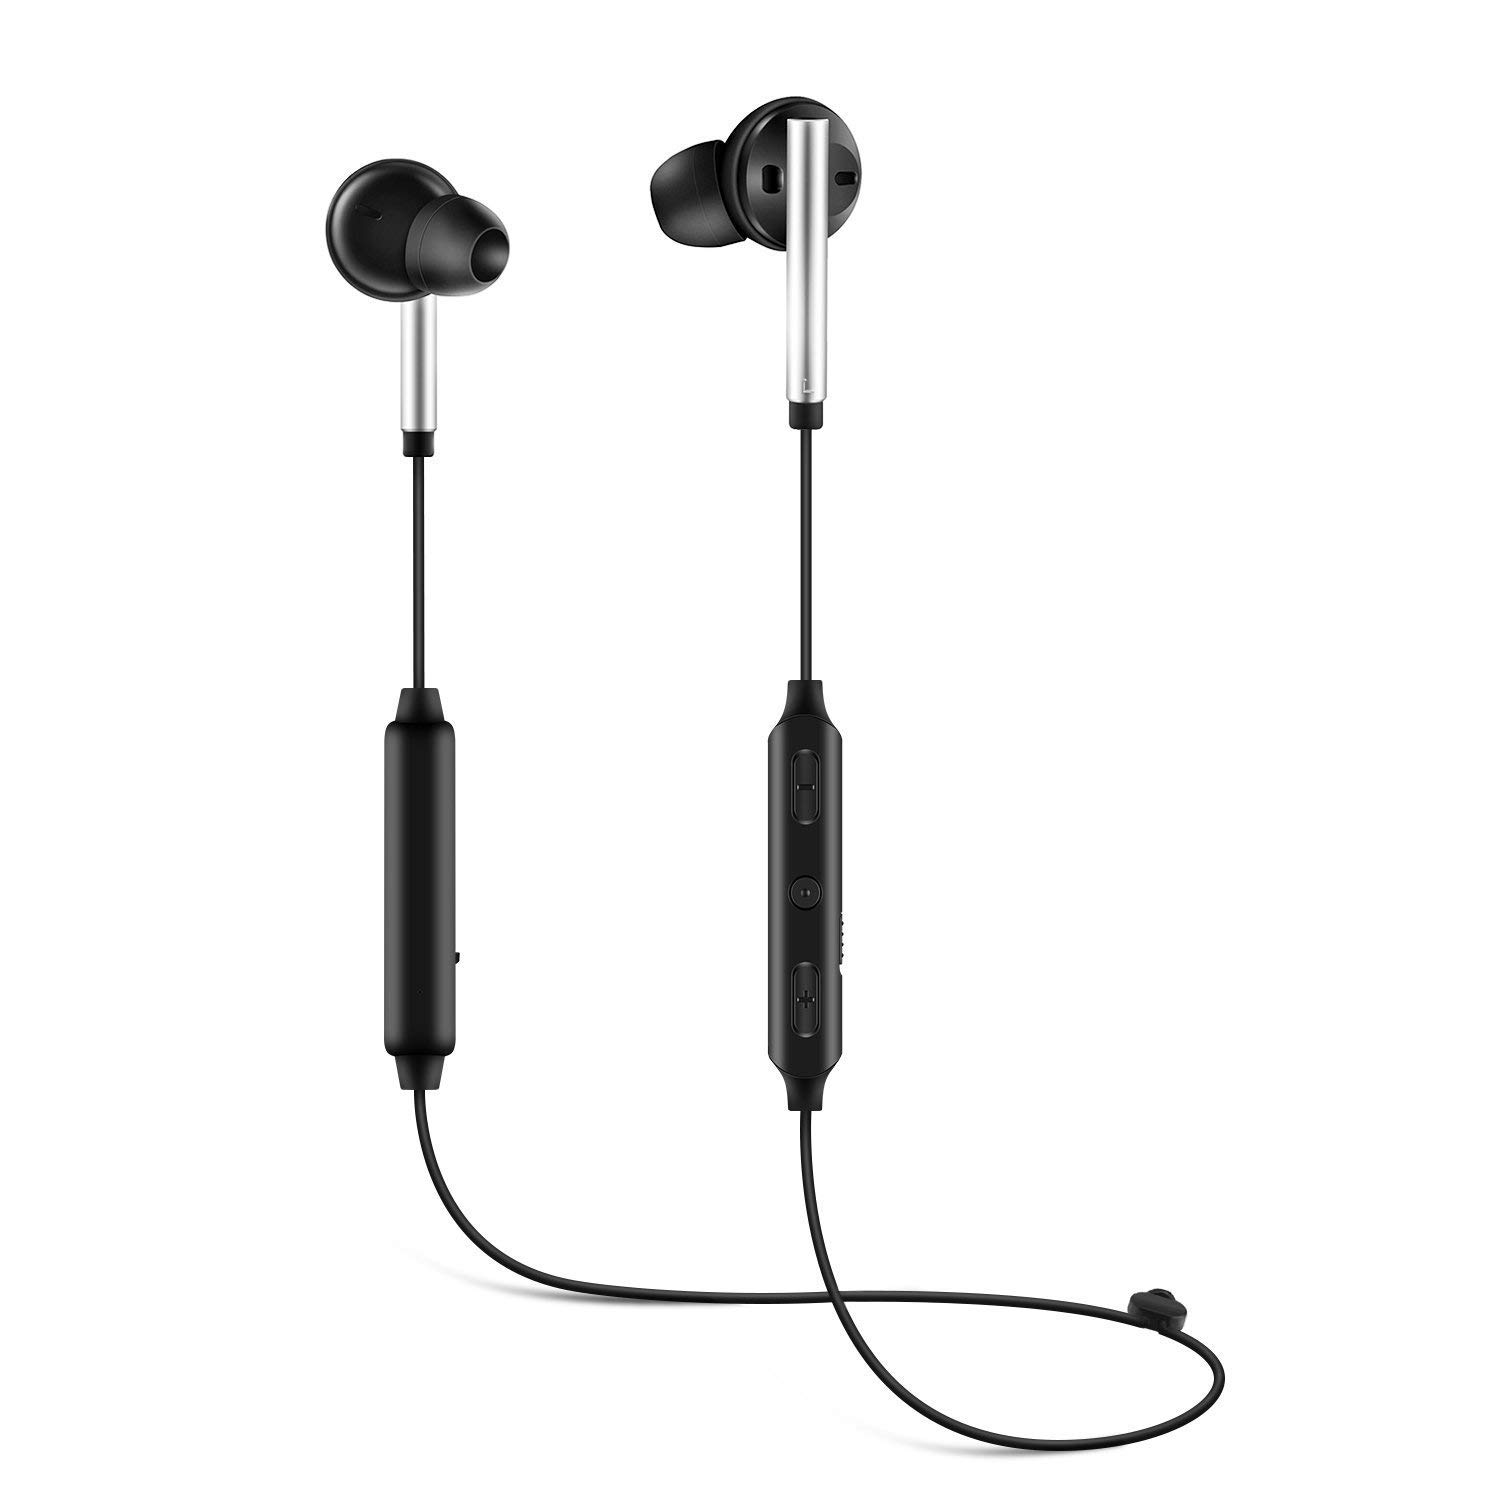 a35b2b2d776 DIZA100 EB03 Active Noise Cancelling Headphones, APTX Support Superior  Stereo Sound in-Ear Wireless Headset Bluetooth ANC Earbuds Microphone 8  Hours ...